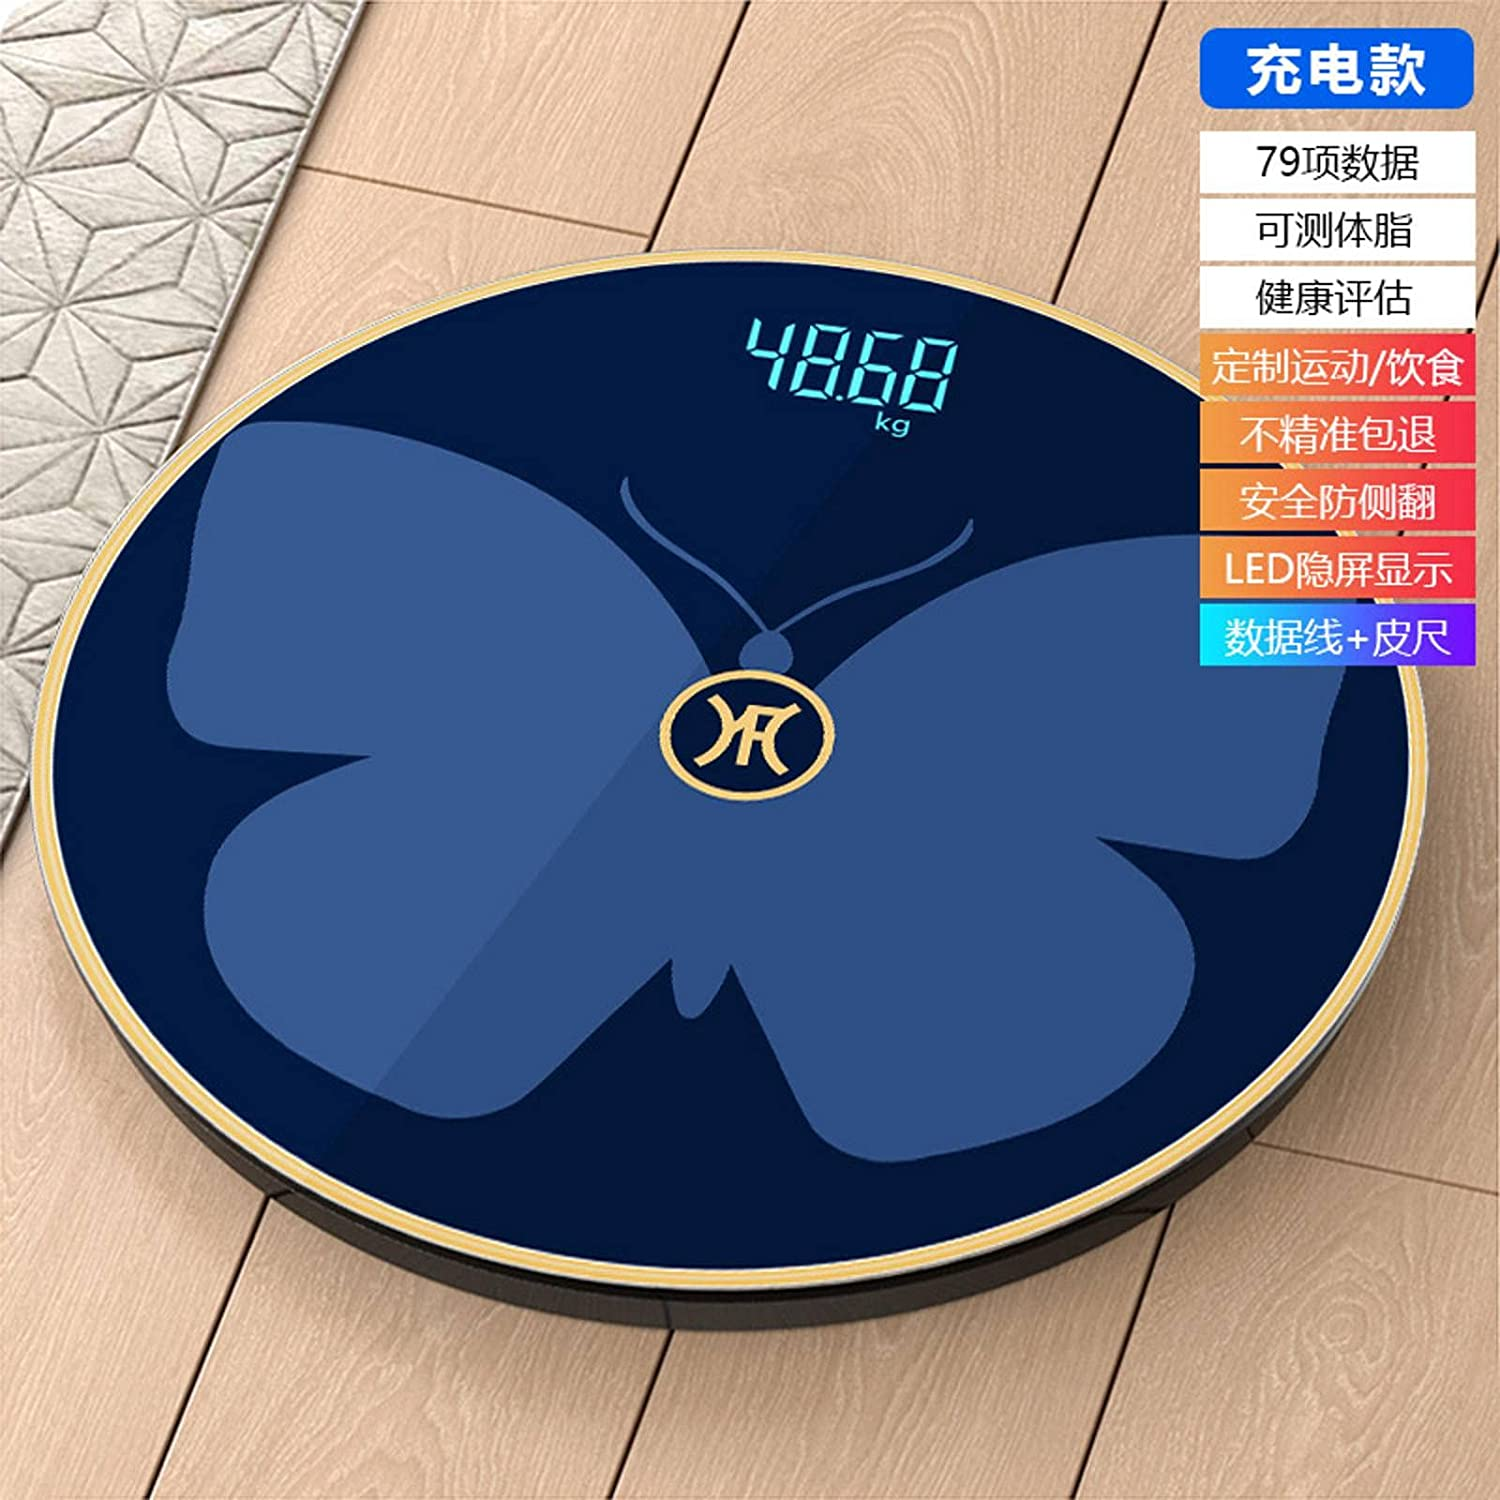 N\C Rechargeable Max 65% OFF Home Smart Electronic En Light Weighing National uniform free shipping Scales